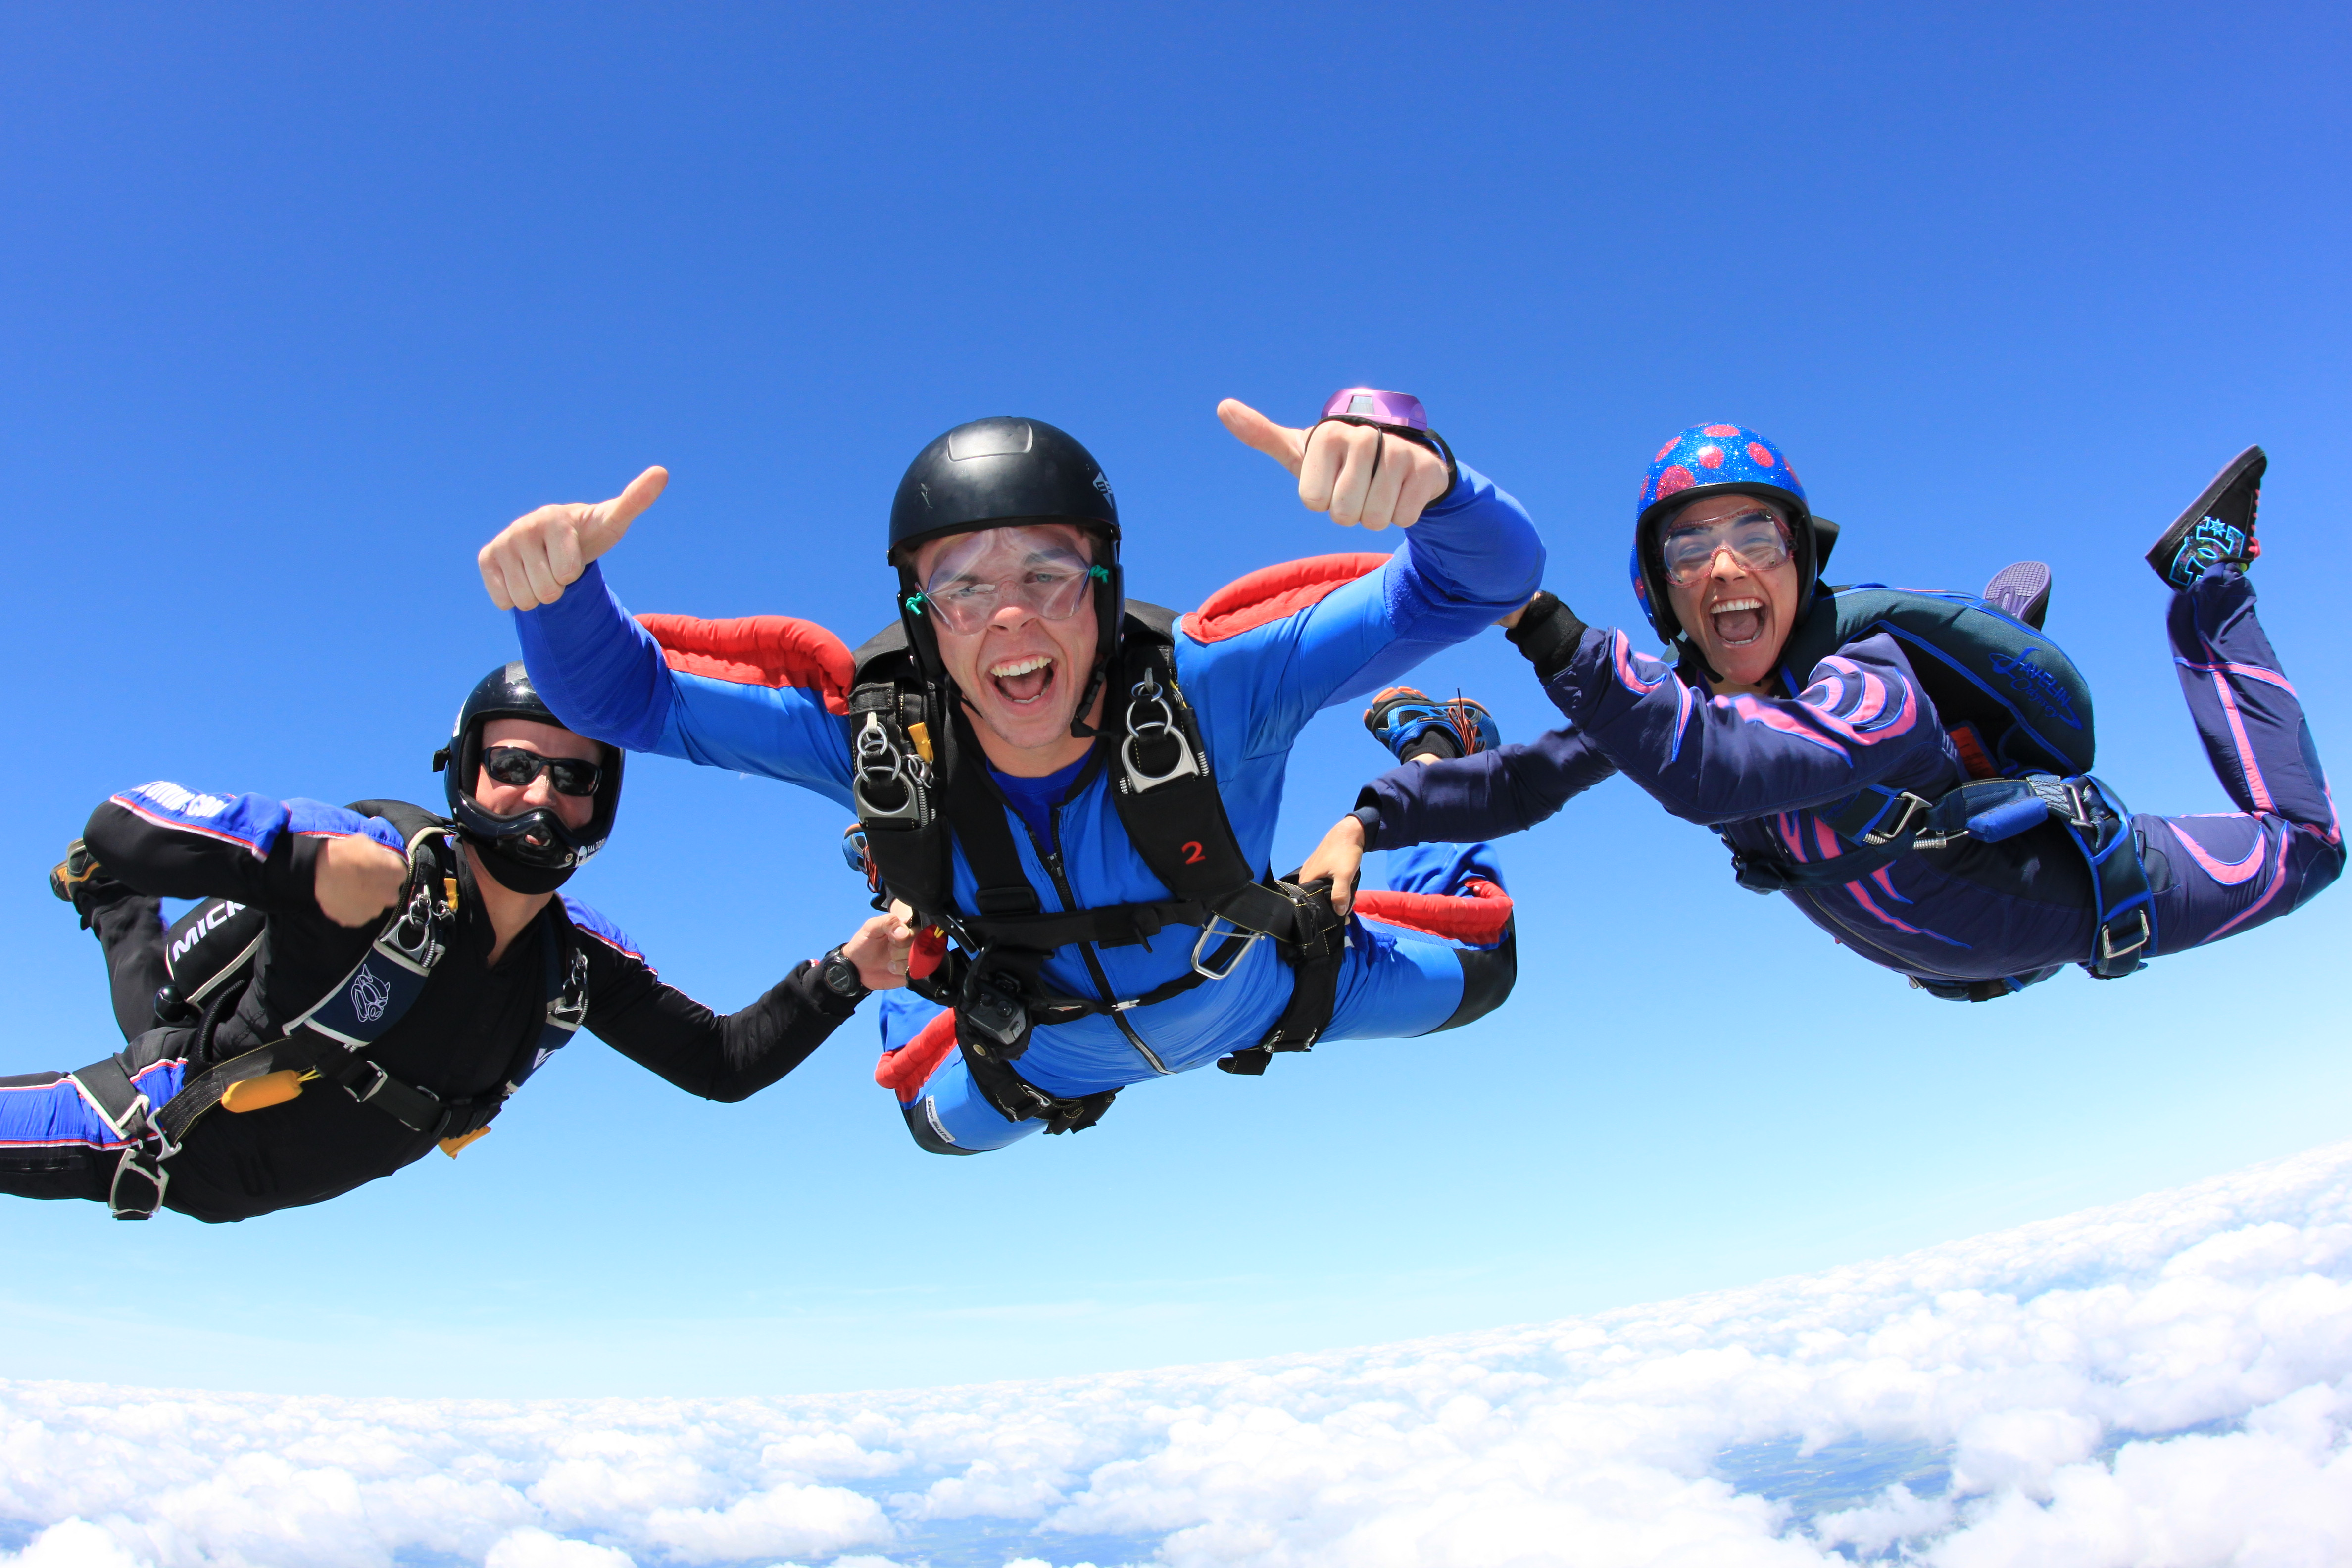 skydiving extreme sport skydive cambly sky diving sports skydivers fall